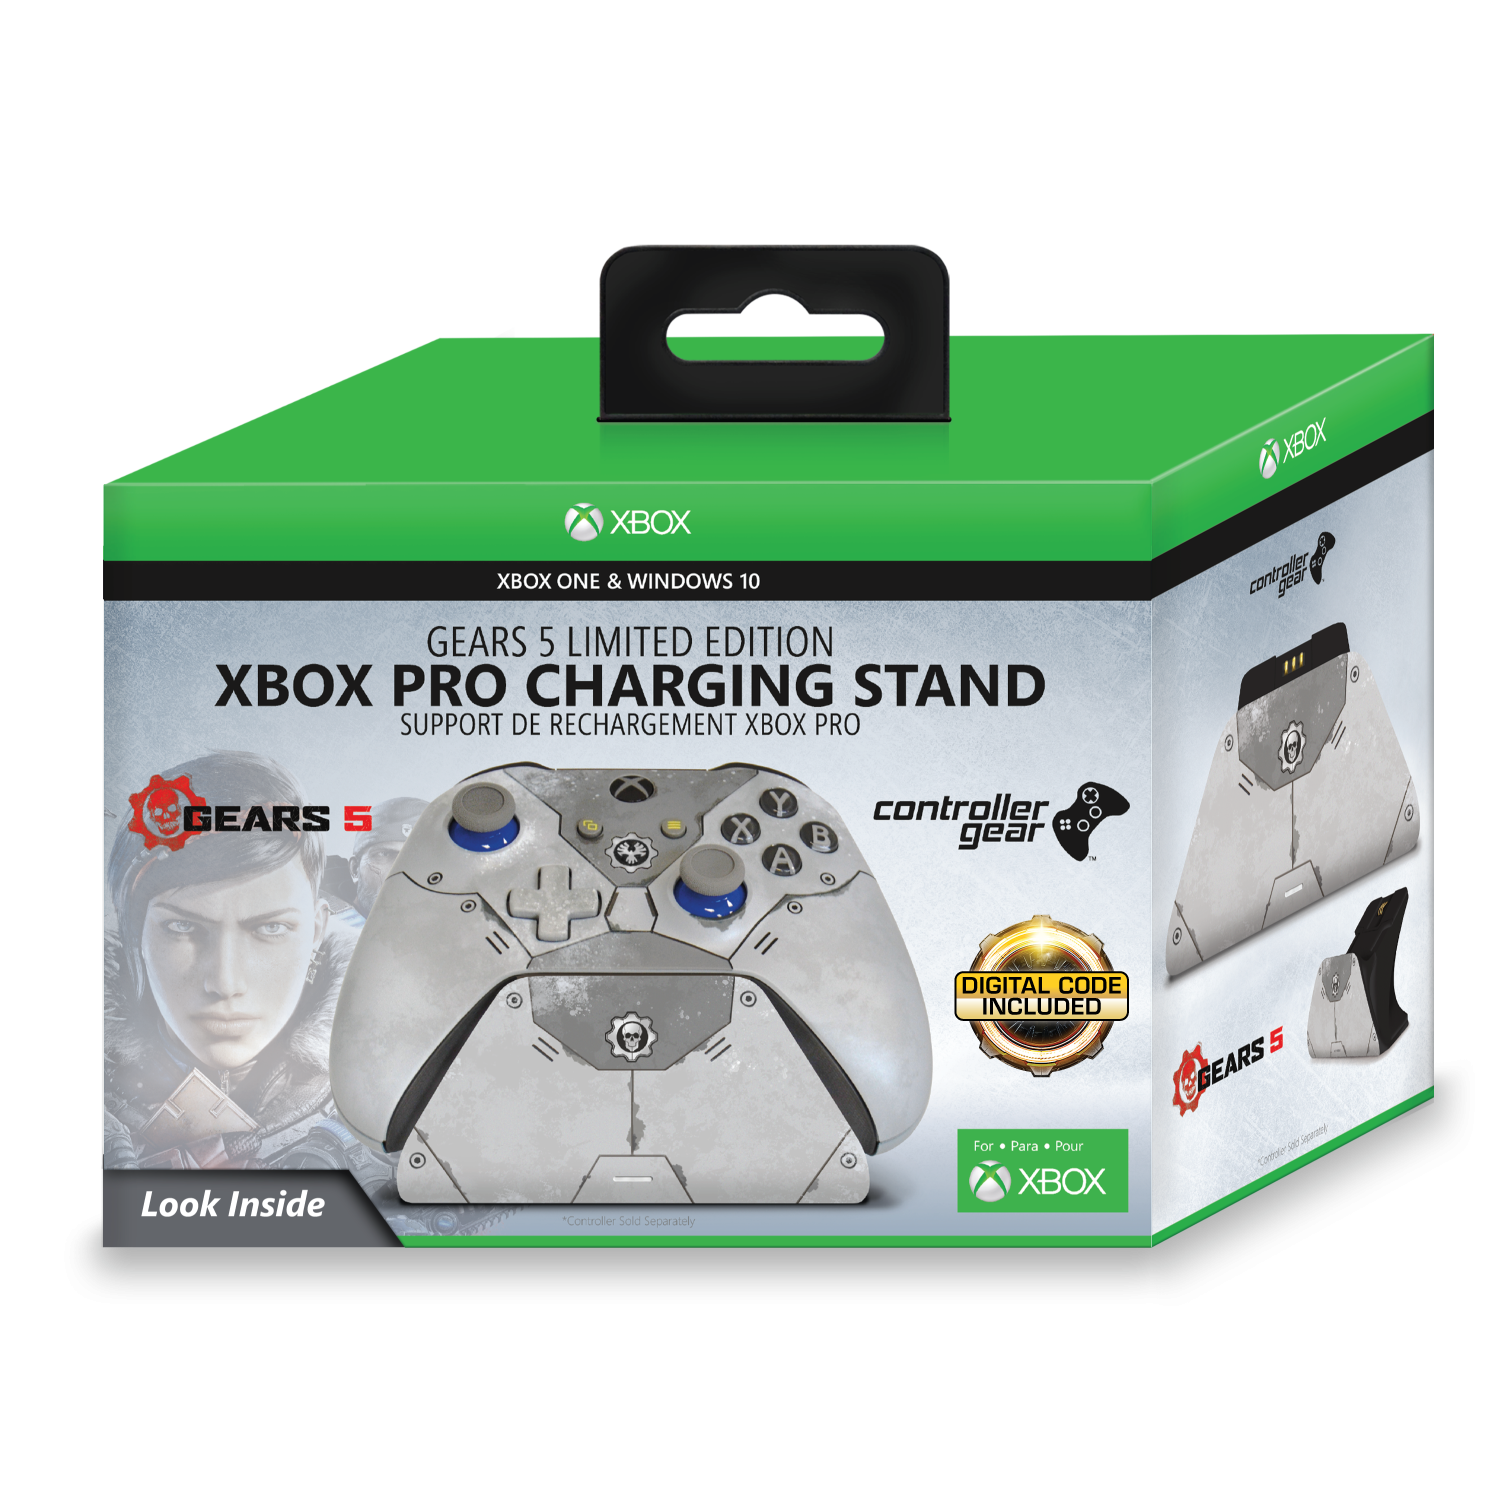 Xbox Pro Controller Charging Stand with a Gears 5 Kait Diaz Limited Edition Design, Image 1